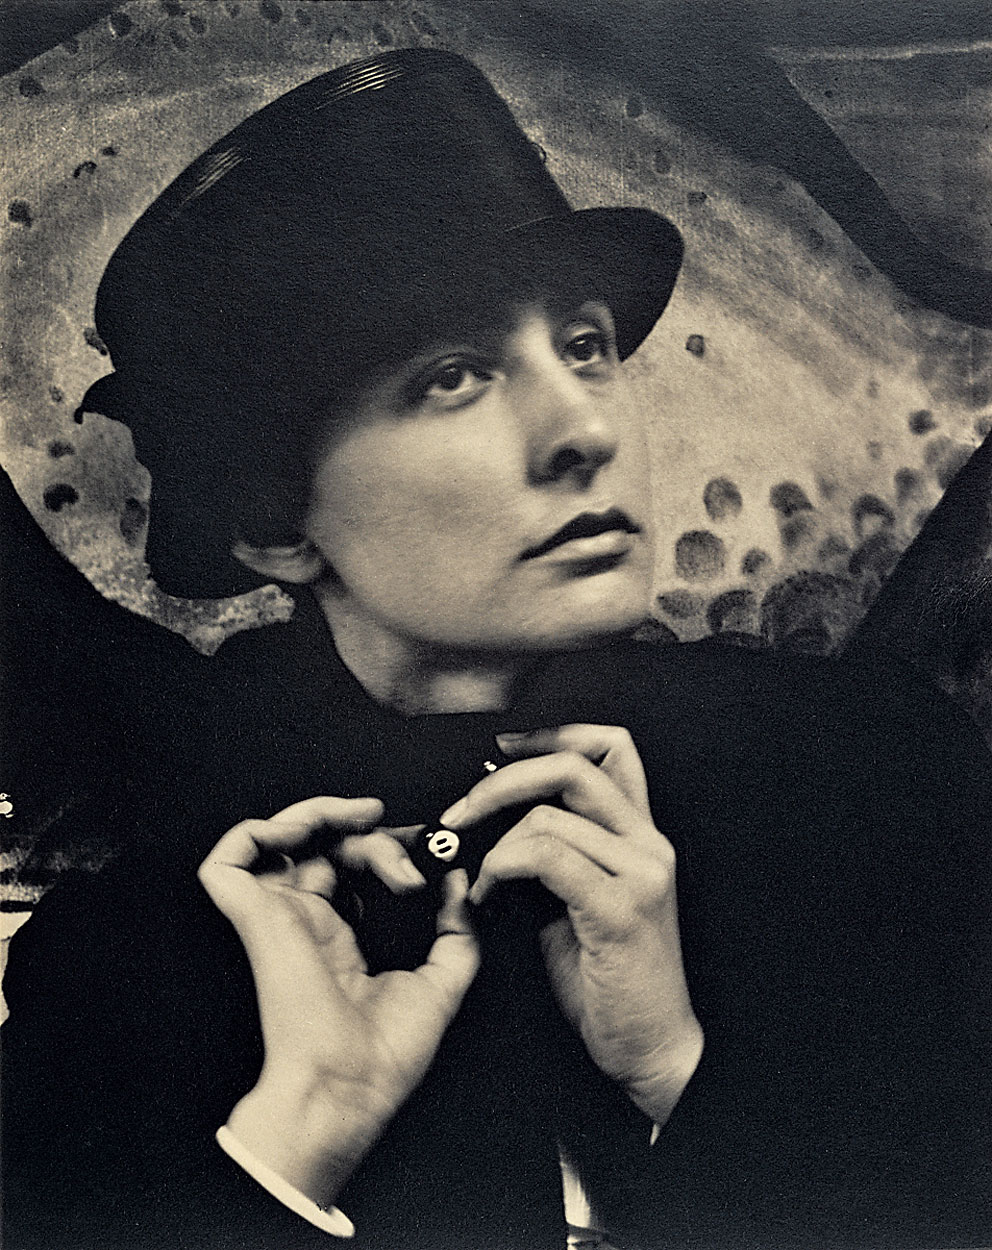 """Georgia O'Keeffe, A Portrait,"" 1918 by Alfred Stieglitz © J. Paul Getty Trust © 2009 Georgia O'Keeffe Museum/ARS, New York"